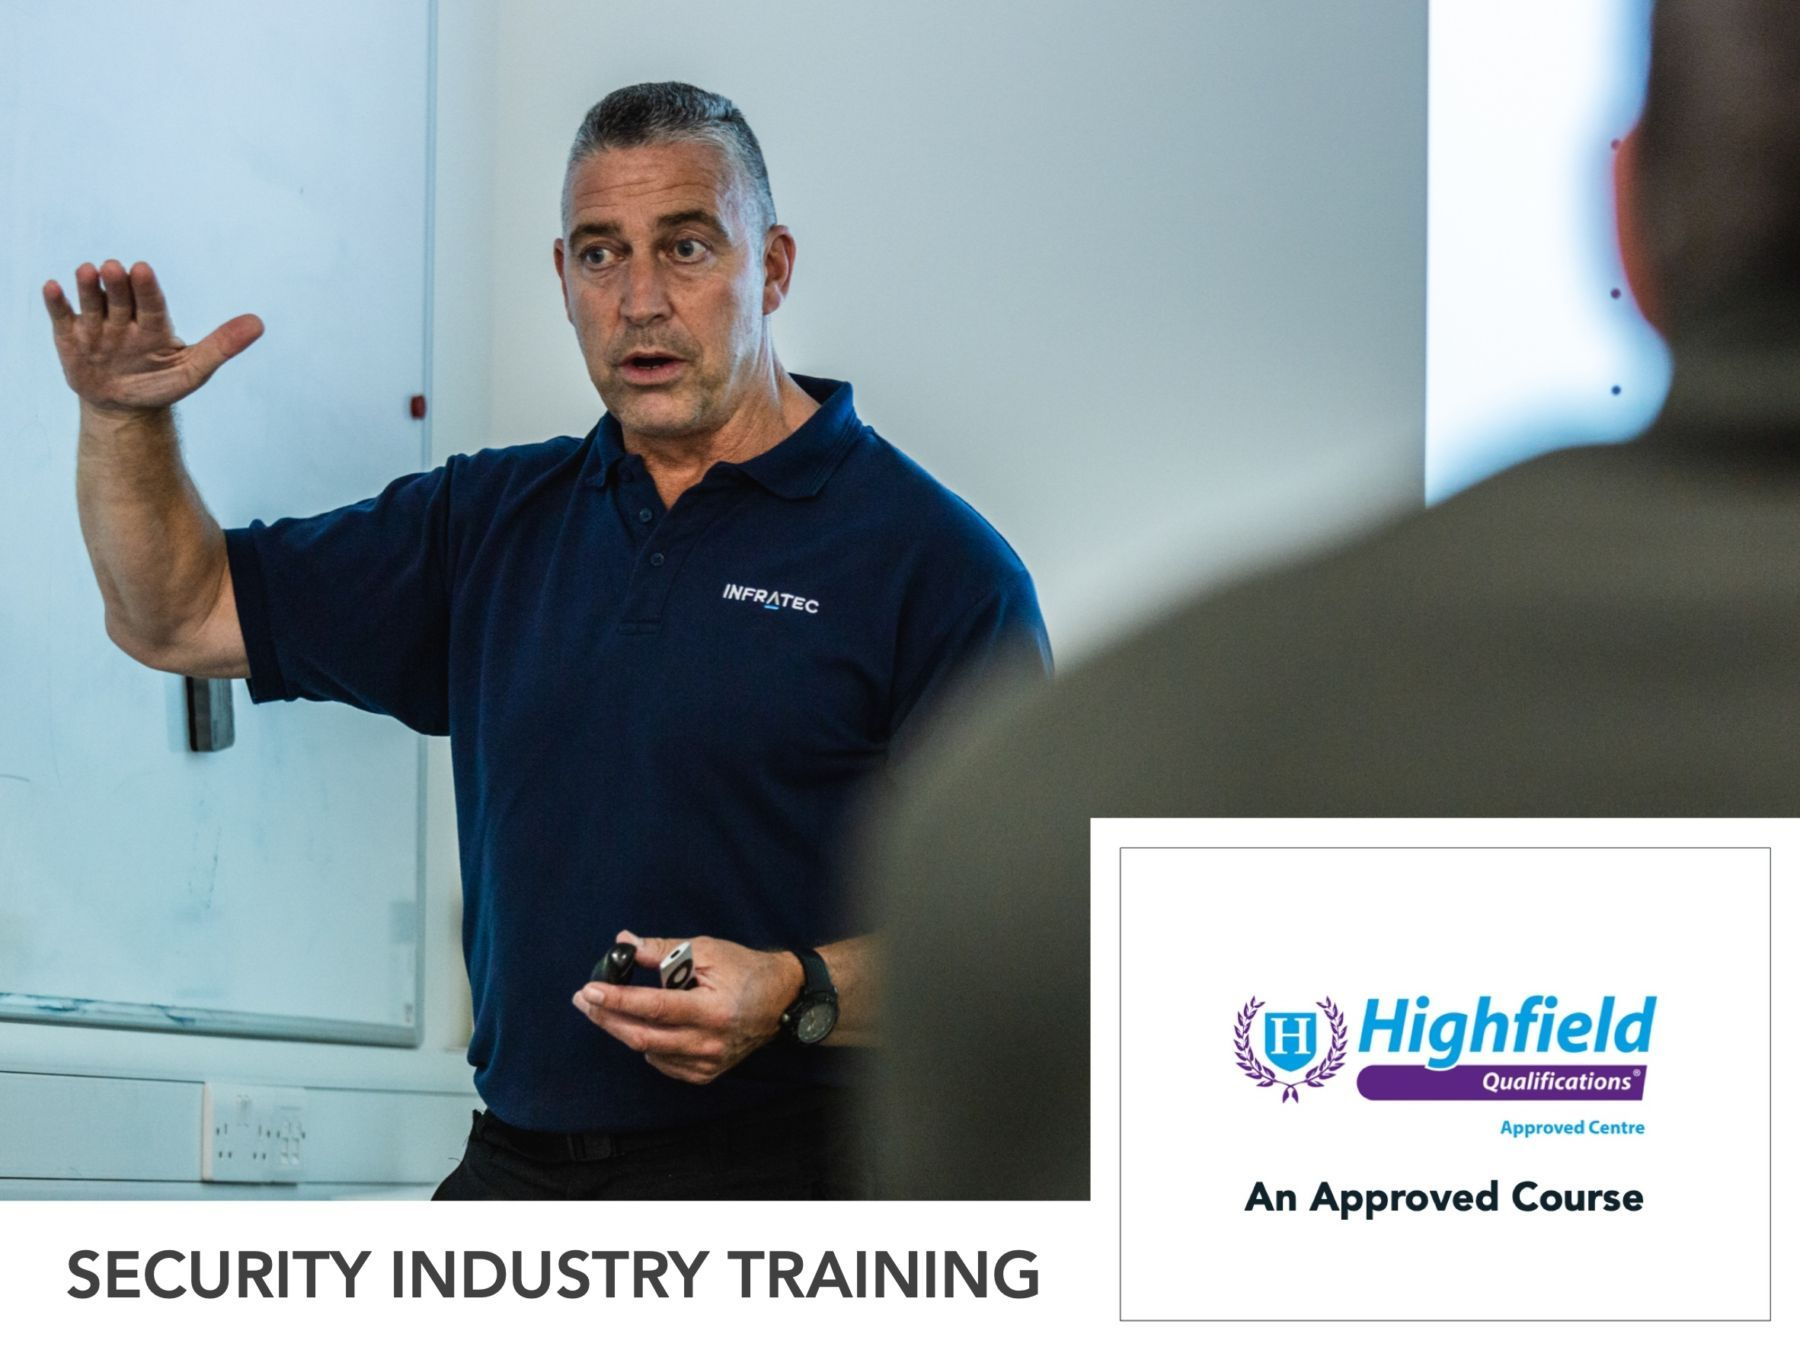 Working as a Security Officer in the Private Industry